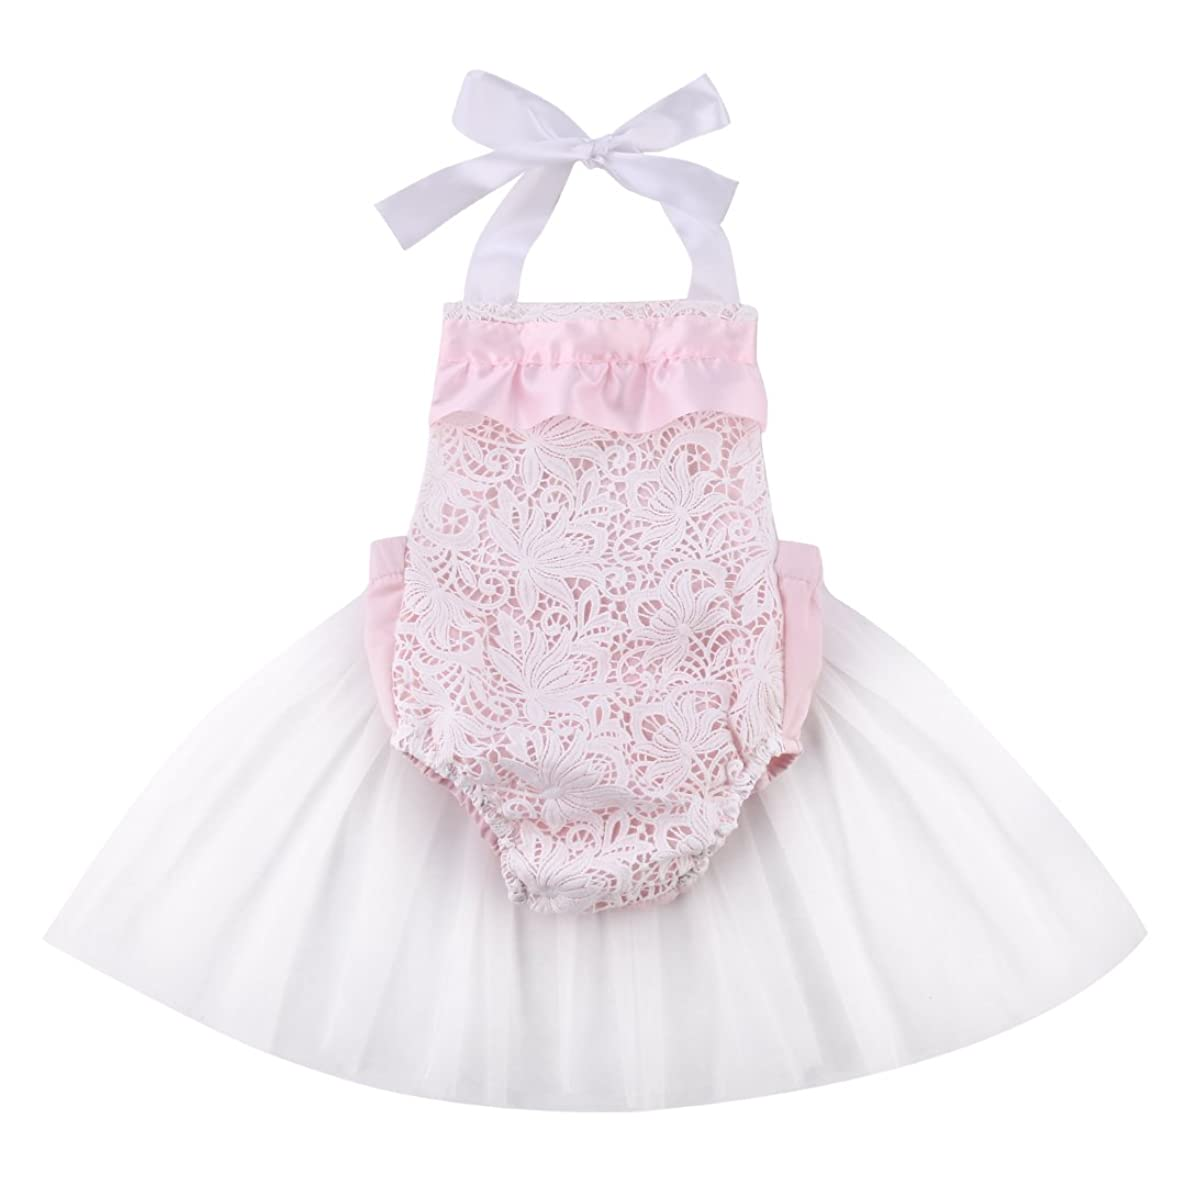 Cute Newborn Baby Girl Lace Flower Tulle Bodysuit Romper Outfits Sunsuit 0-18M